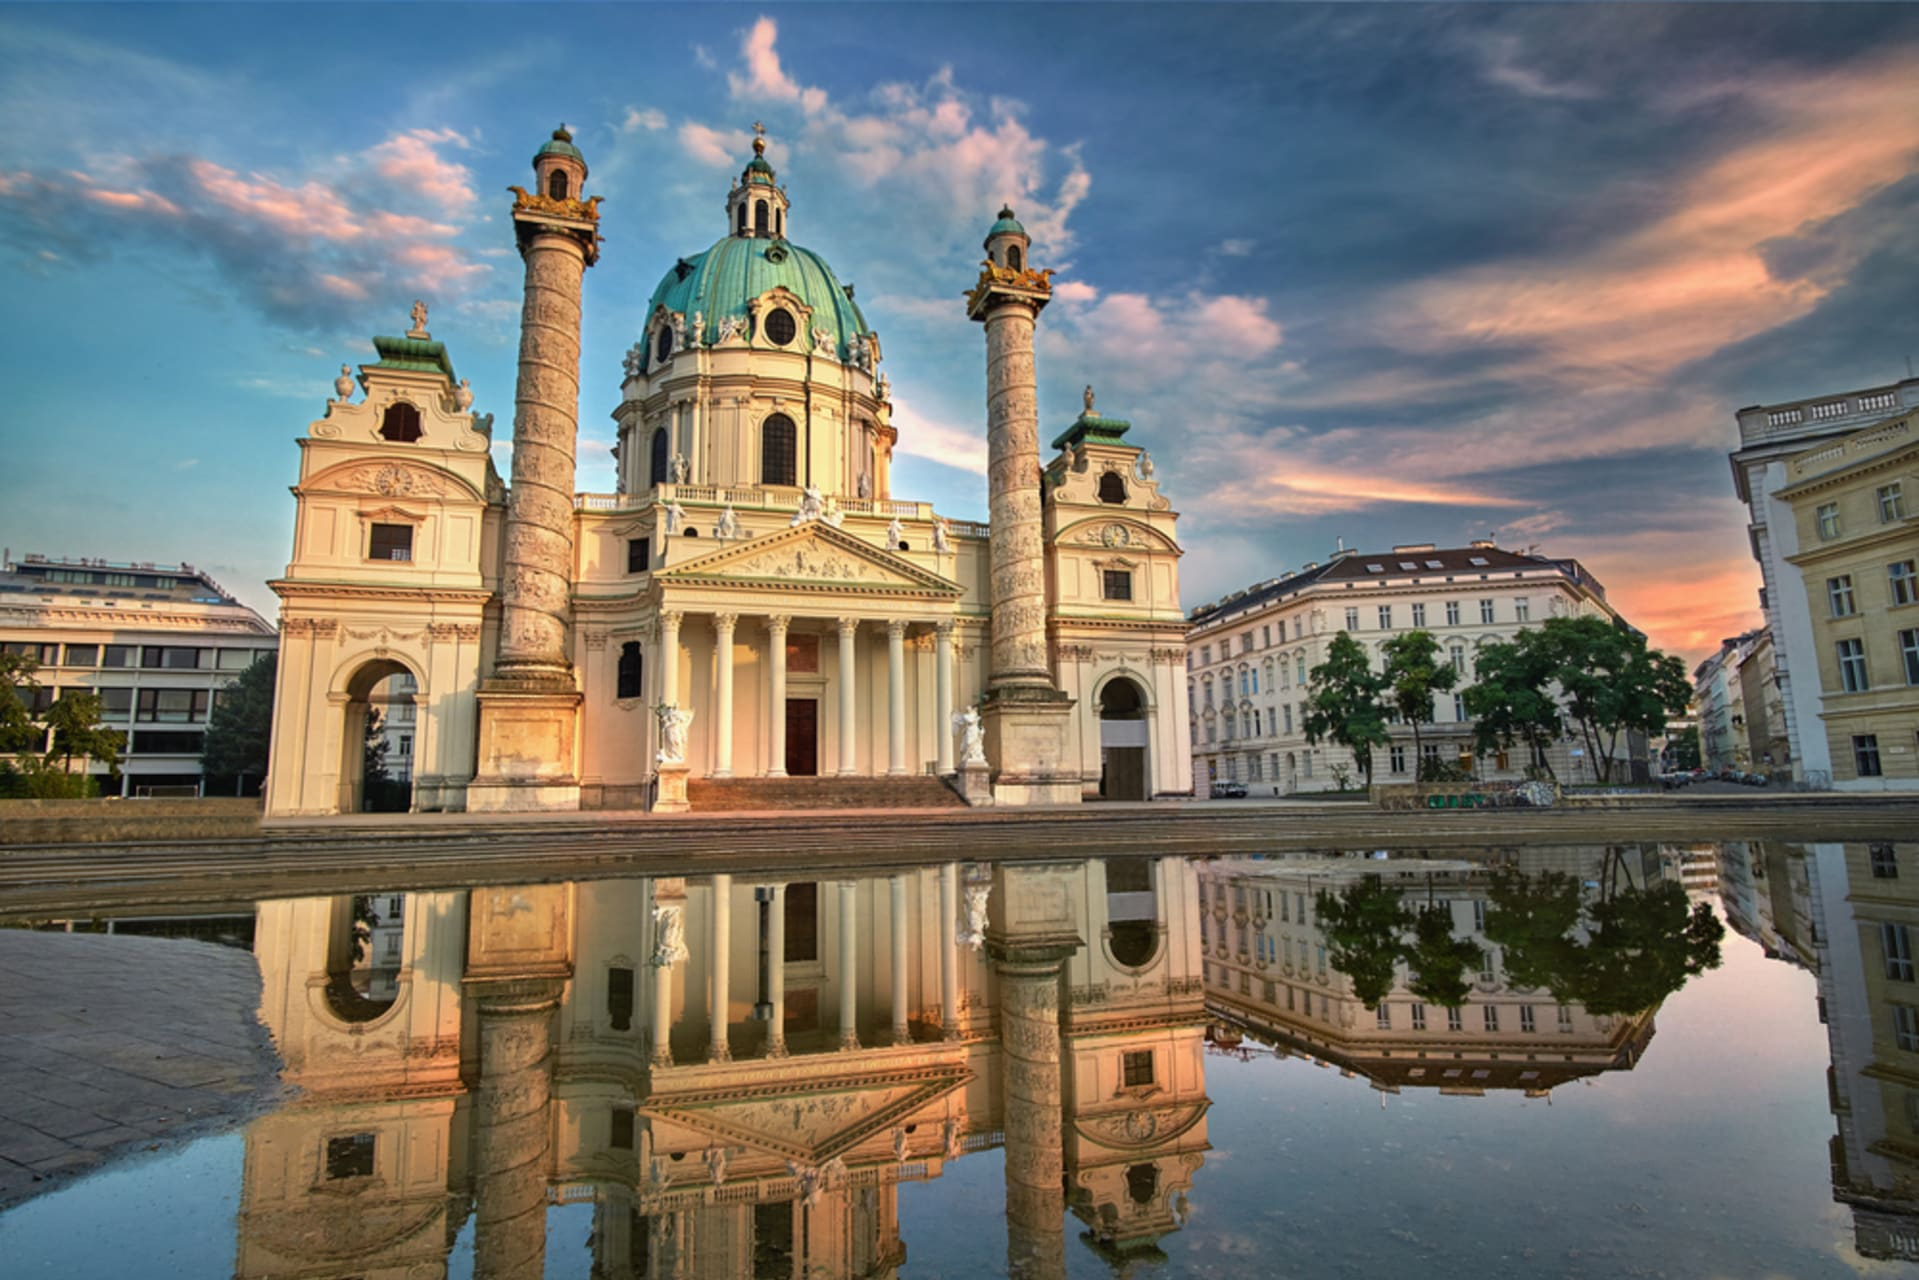 Vienna - The City of a Million Melodies